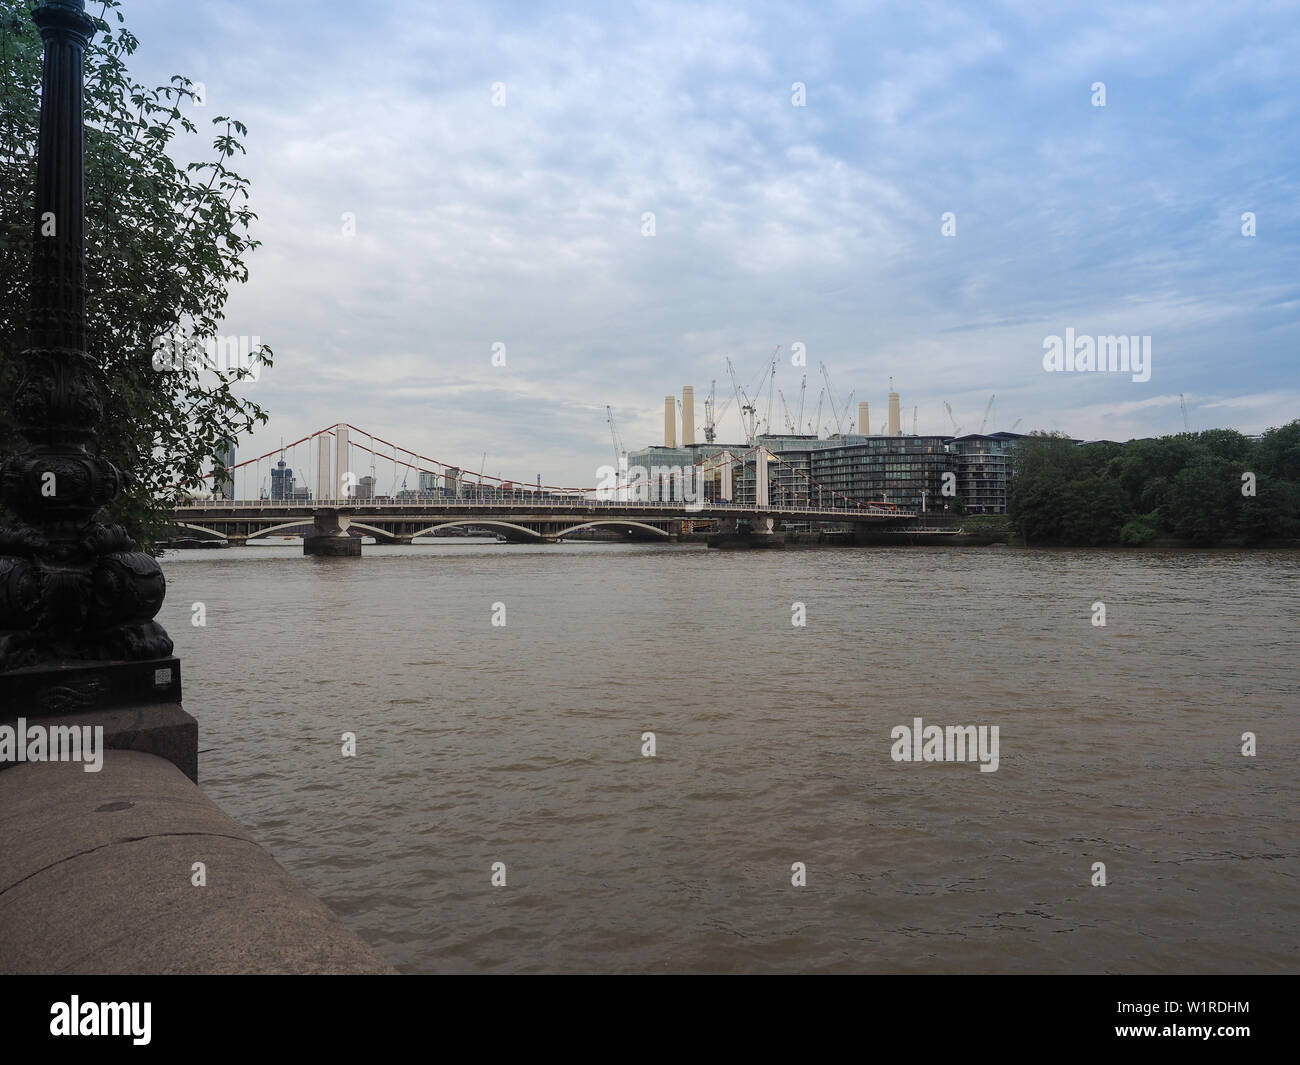 LONDON, UK - CIRCA JUNE 2019: Panoramic view of River Thames with Battersea Power Station and Chelsea Bridge - Stock Image